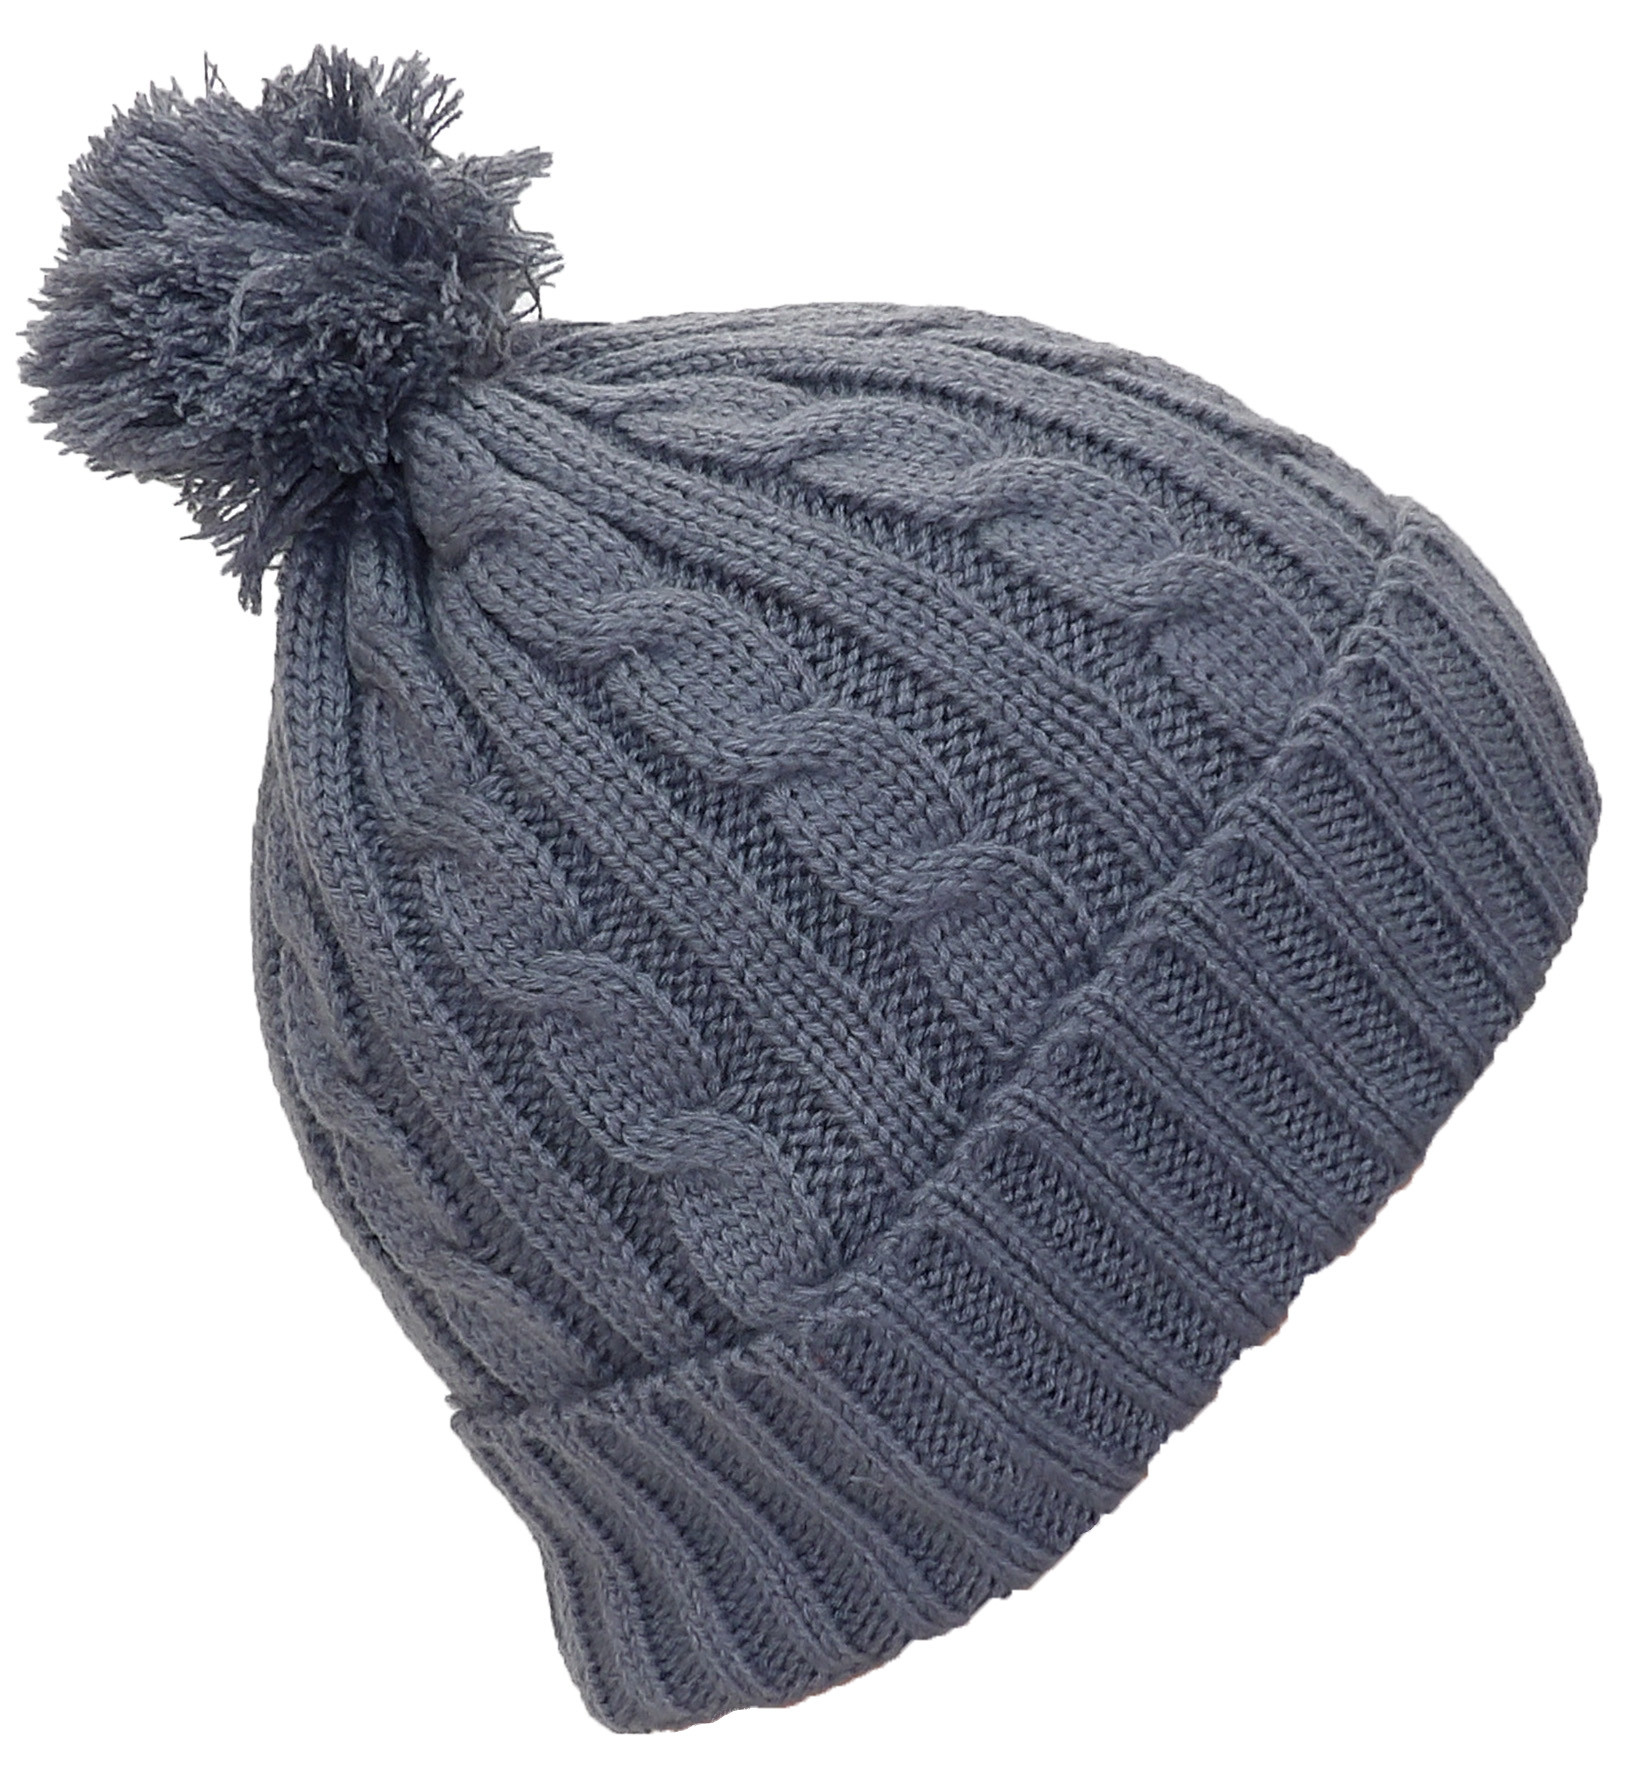 Elegant Best Winter Hats Womens Tight Cable Knit Cuffed Cap W Pom Winter Knit Hats Of Charming 40 Photos Winter Knit Hats